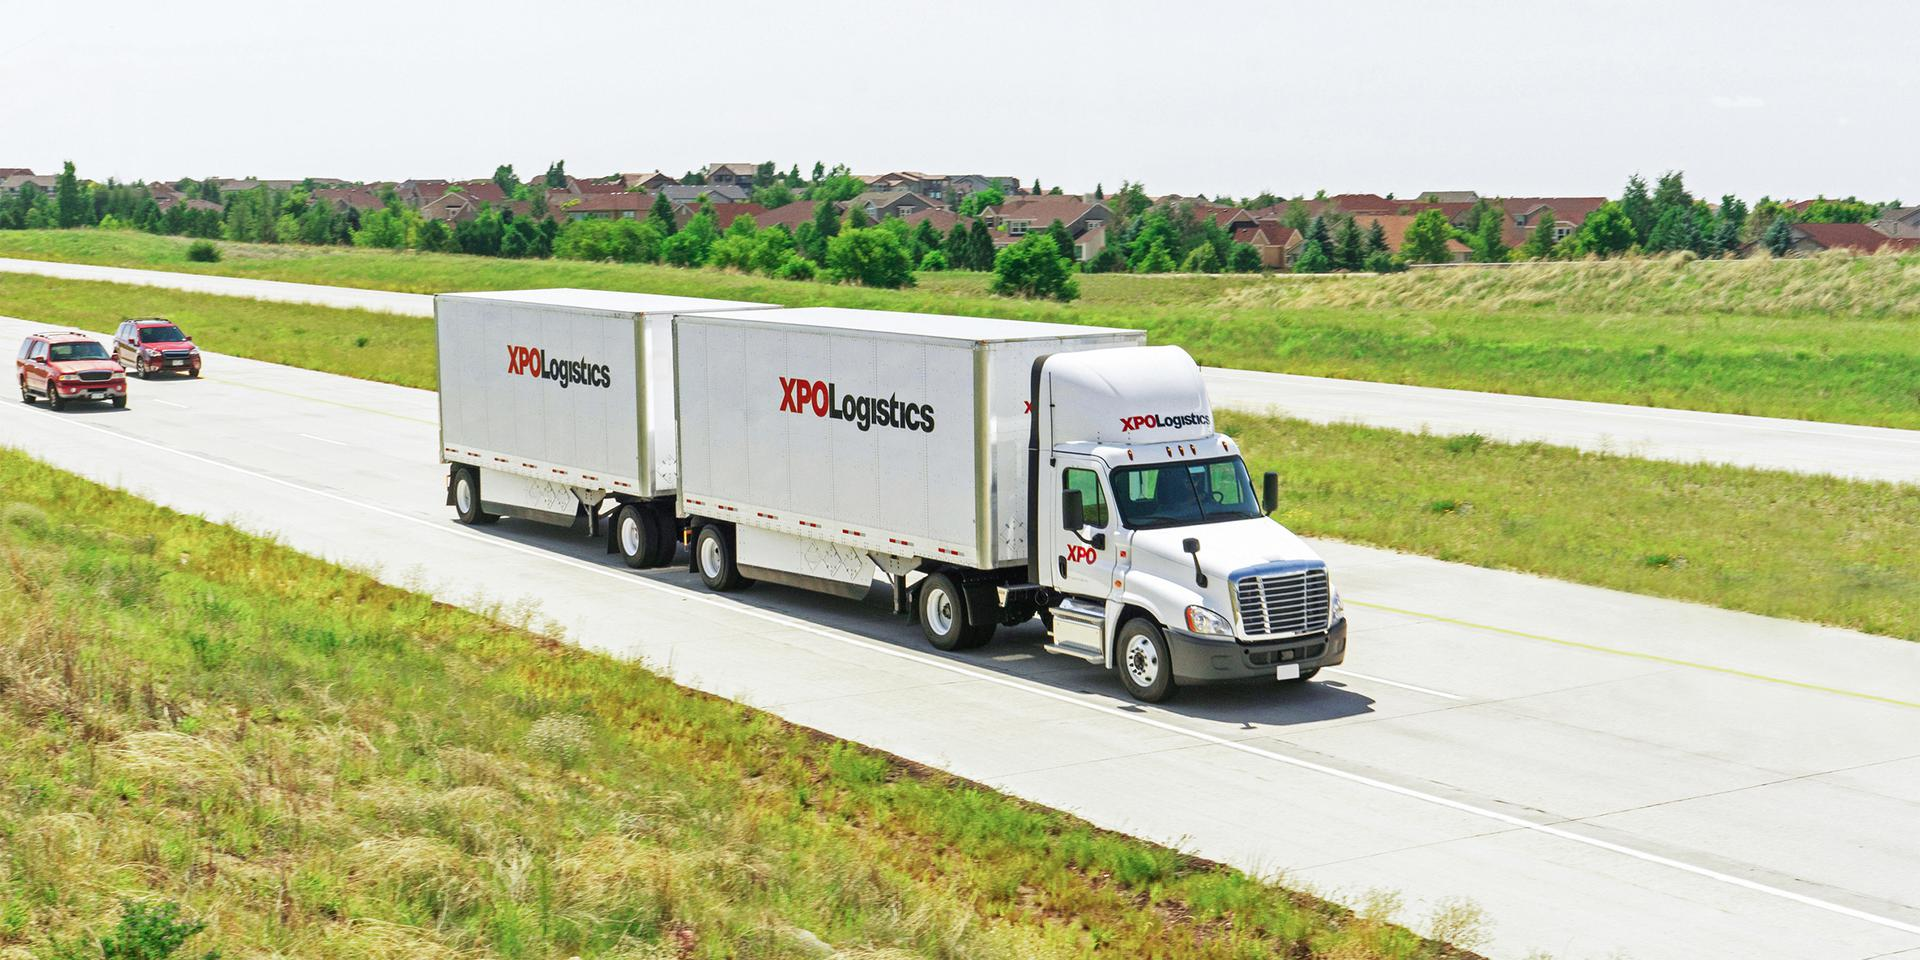 XPO LTL double trailer truck on highway